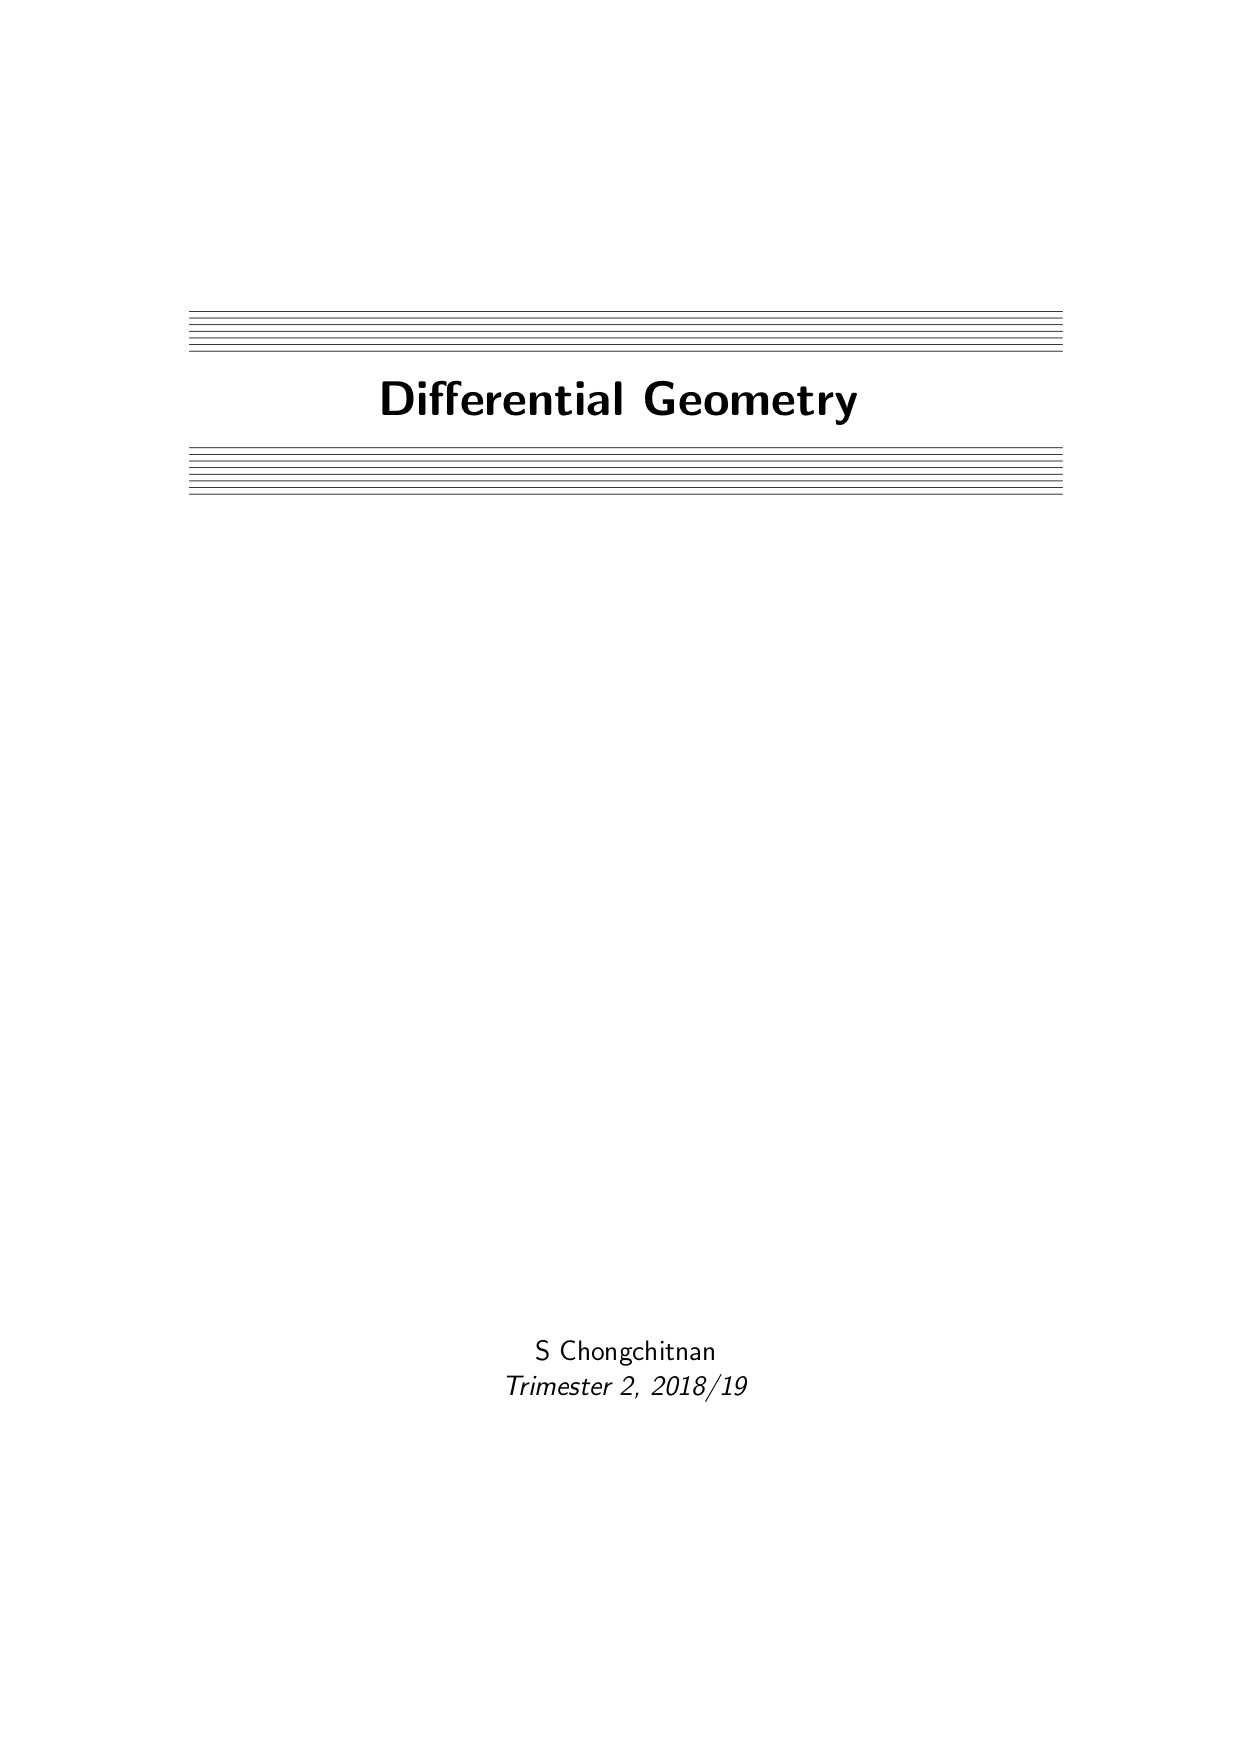 Differential Geometry 18/19